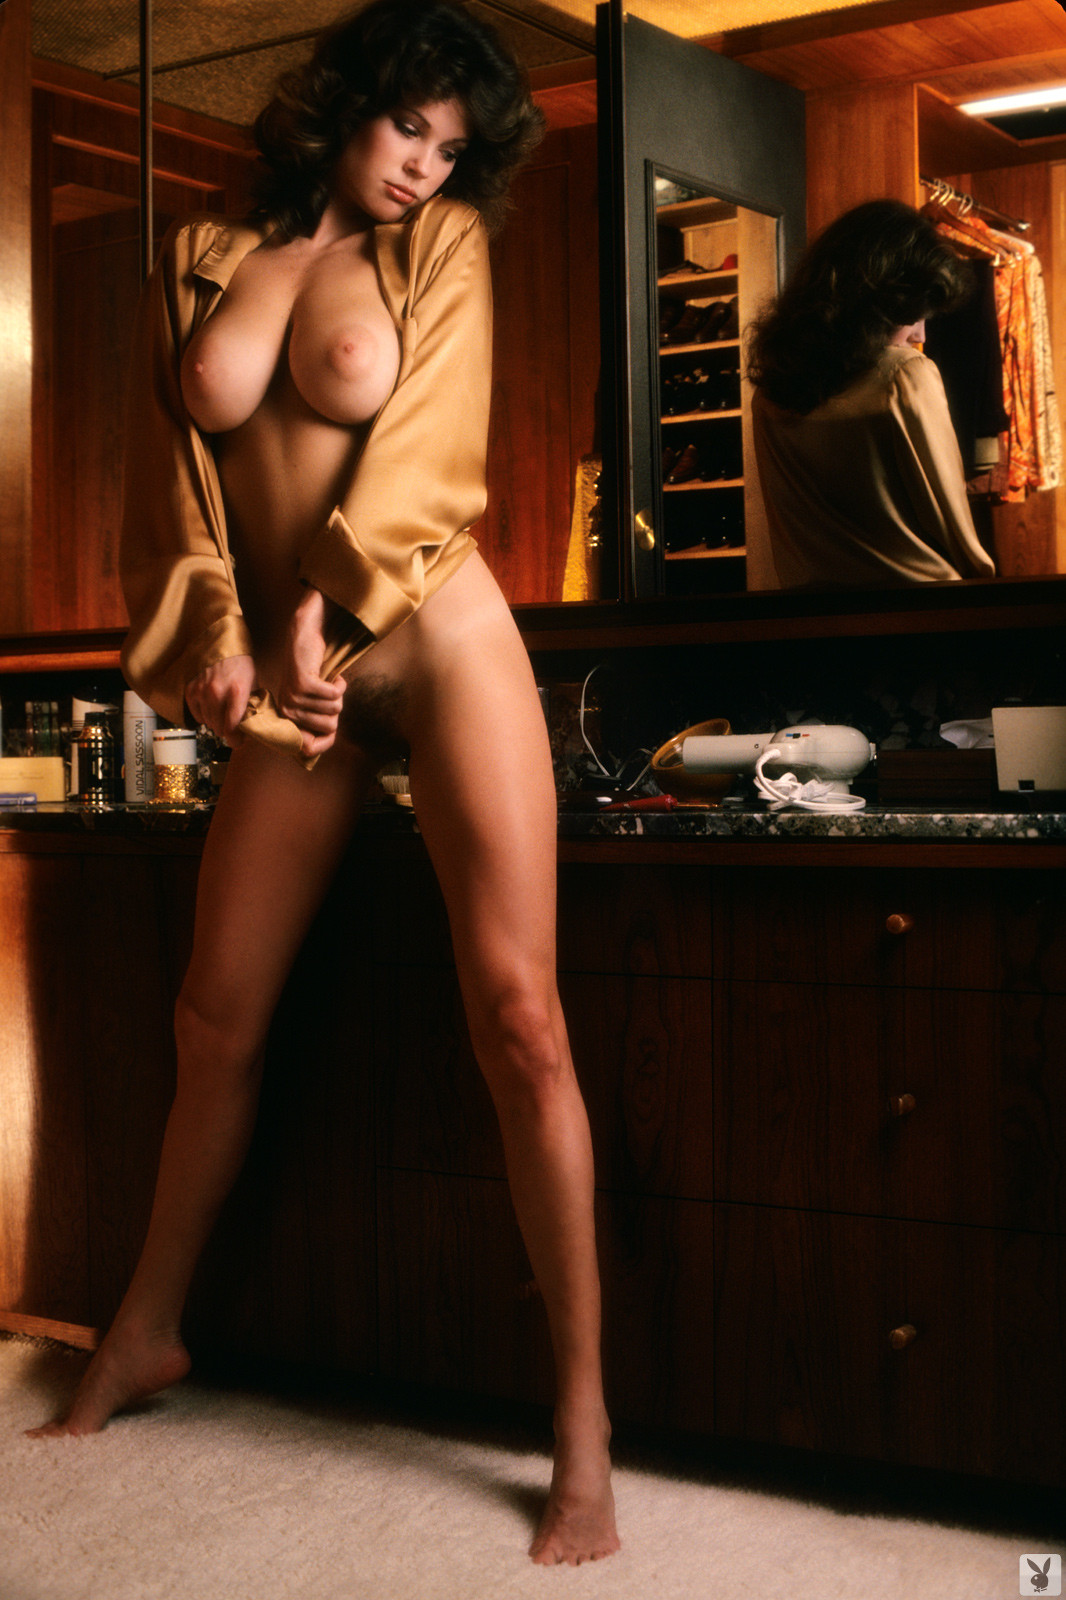 classic playboy playmate: candy loving, miss january 1979   babes today